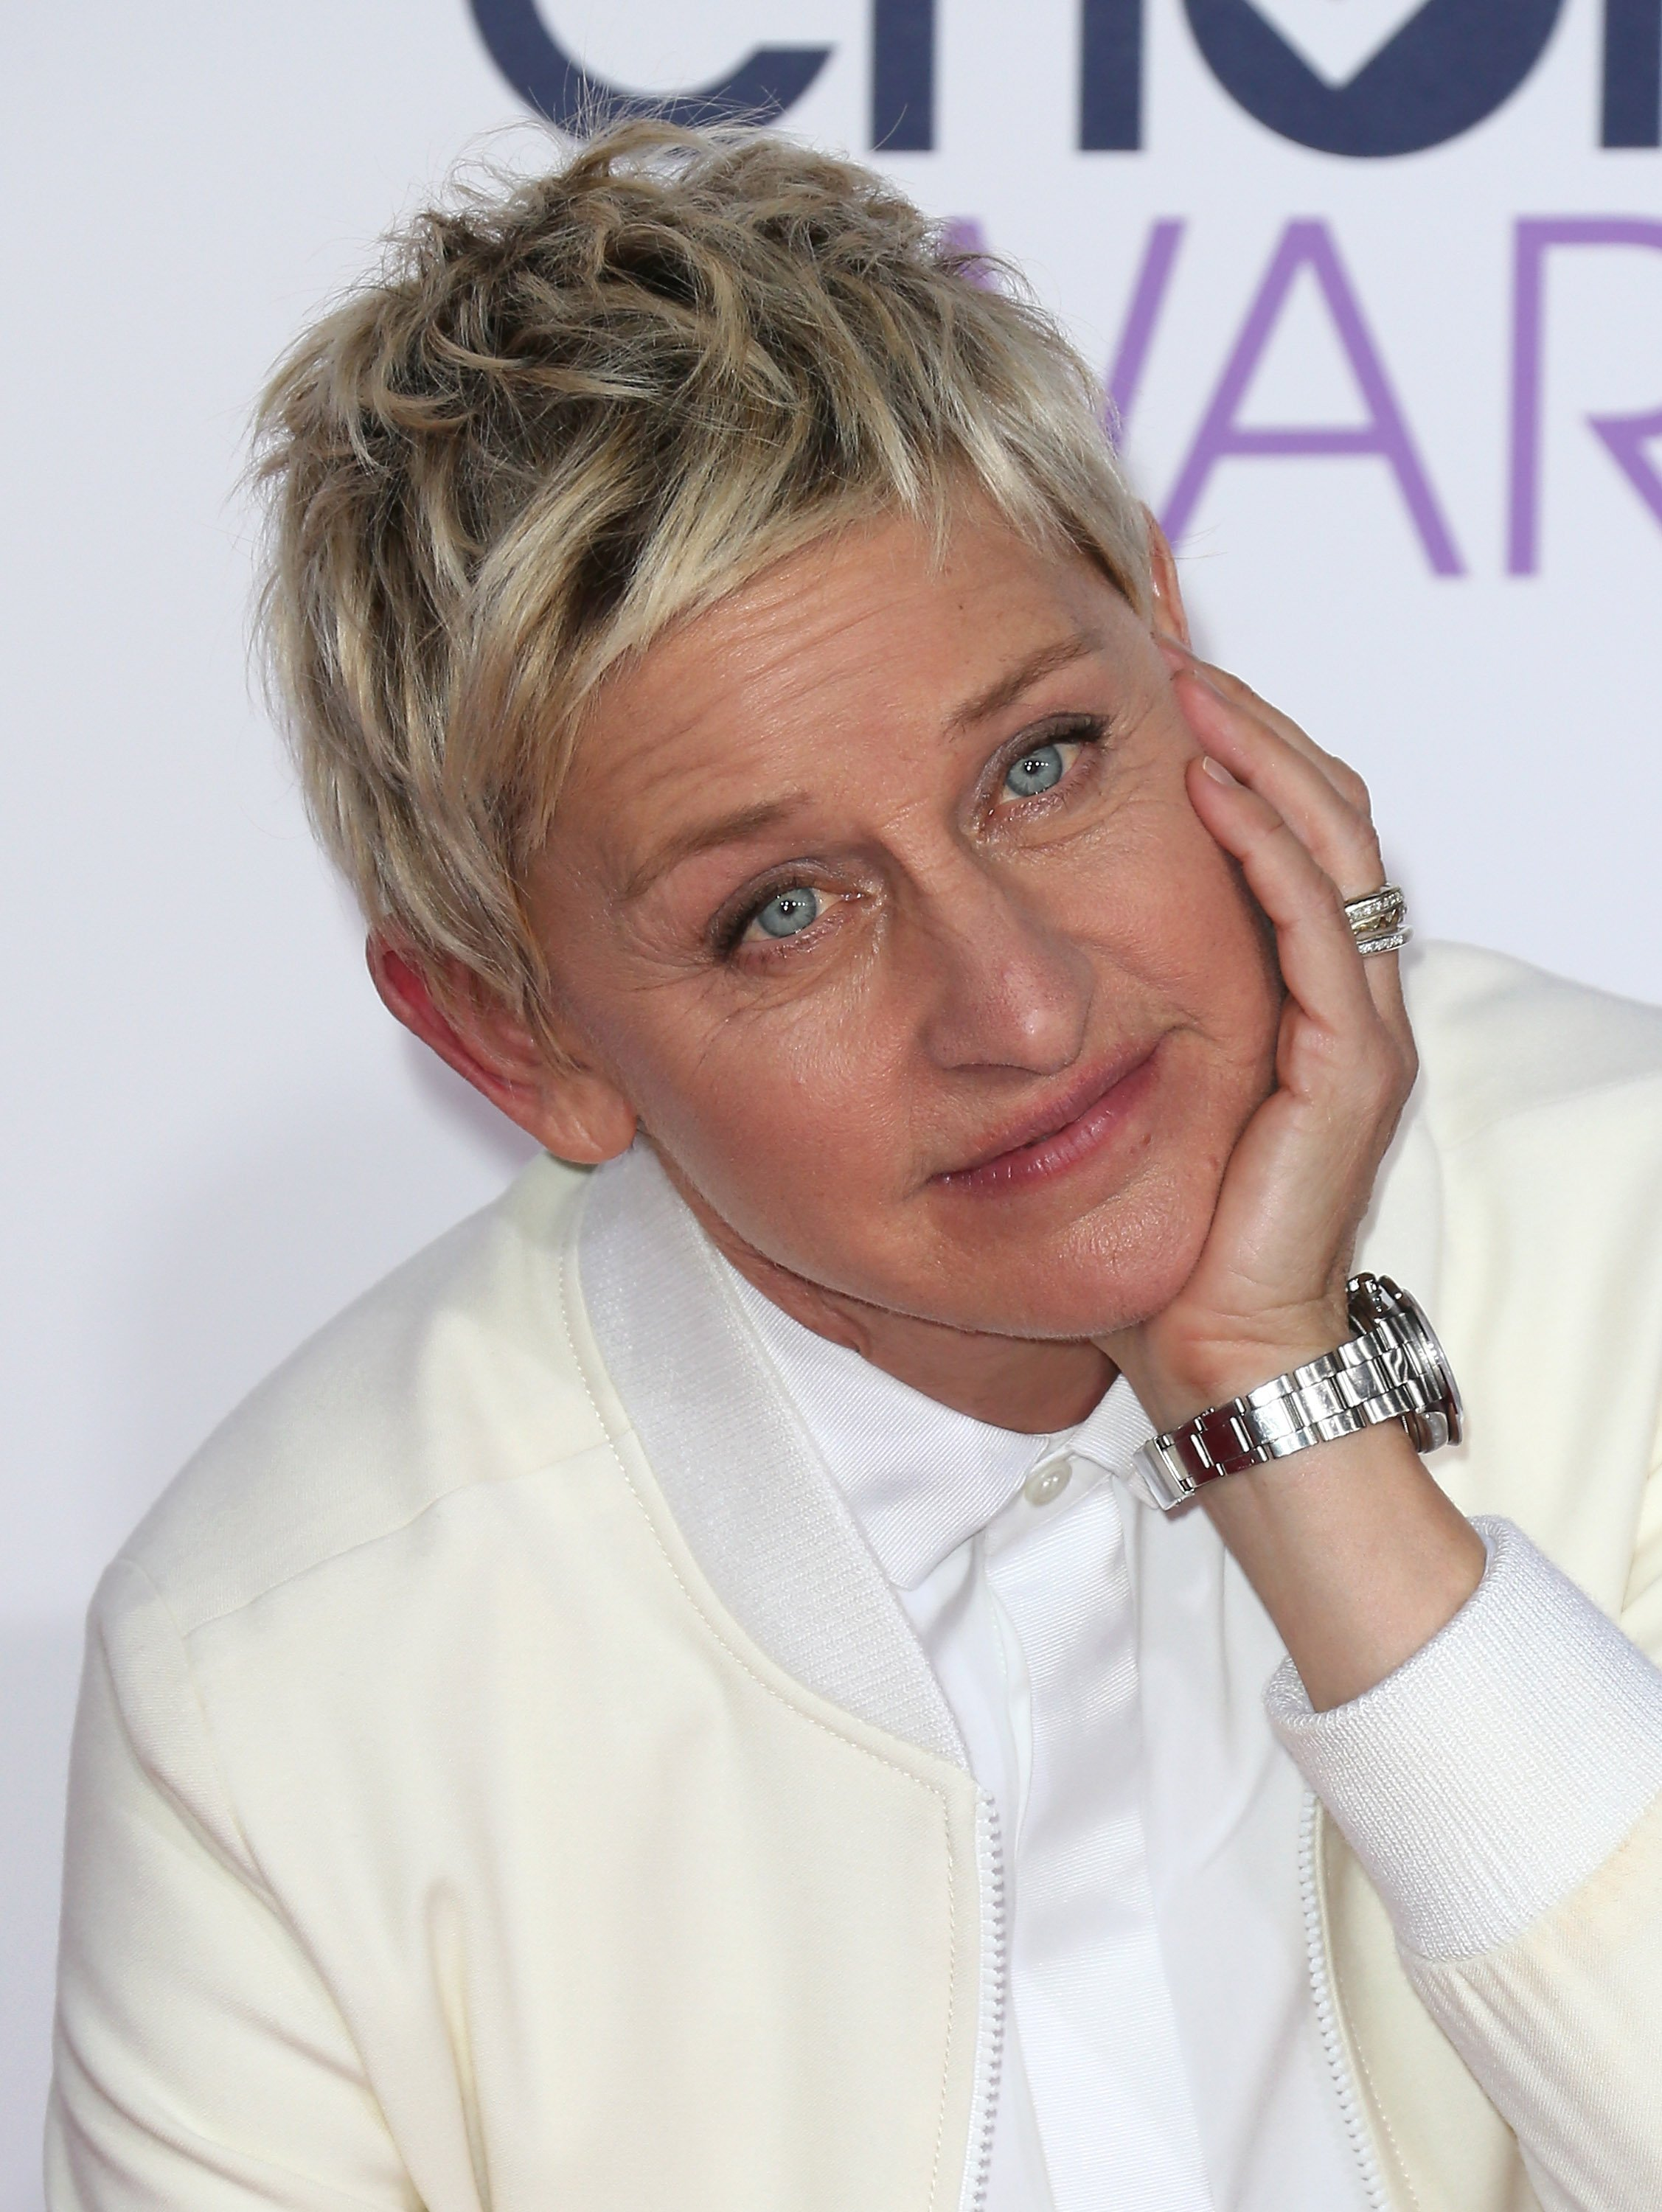 Ellen DeGeneres attends the People's Choice Awards in Los Angeles, California on January 7, 2015 | Photo: Getty Images